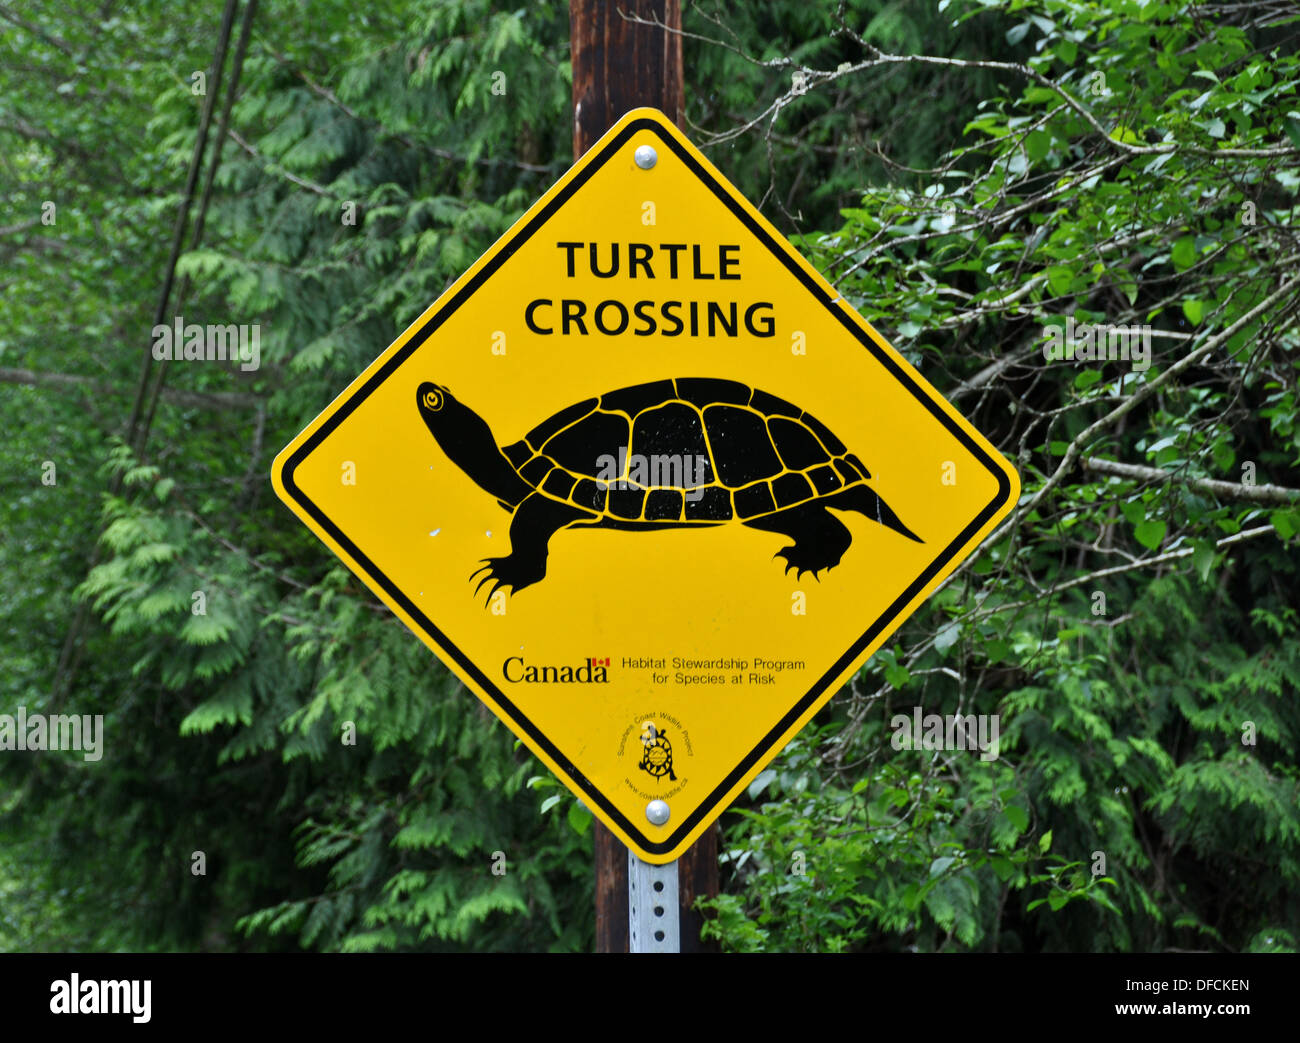 Slow Turtle Crossing >> Turtle Crossing Sign Stock Photo 61129677 Alamy